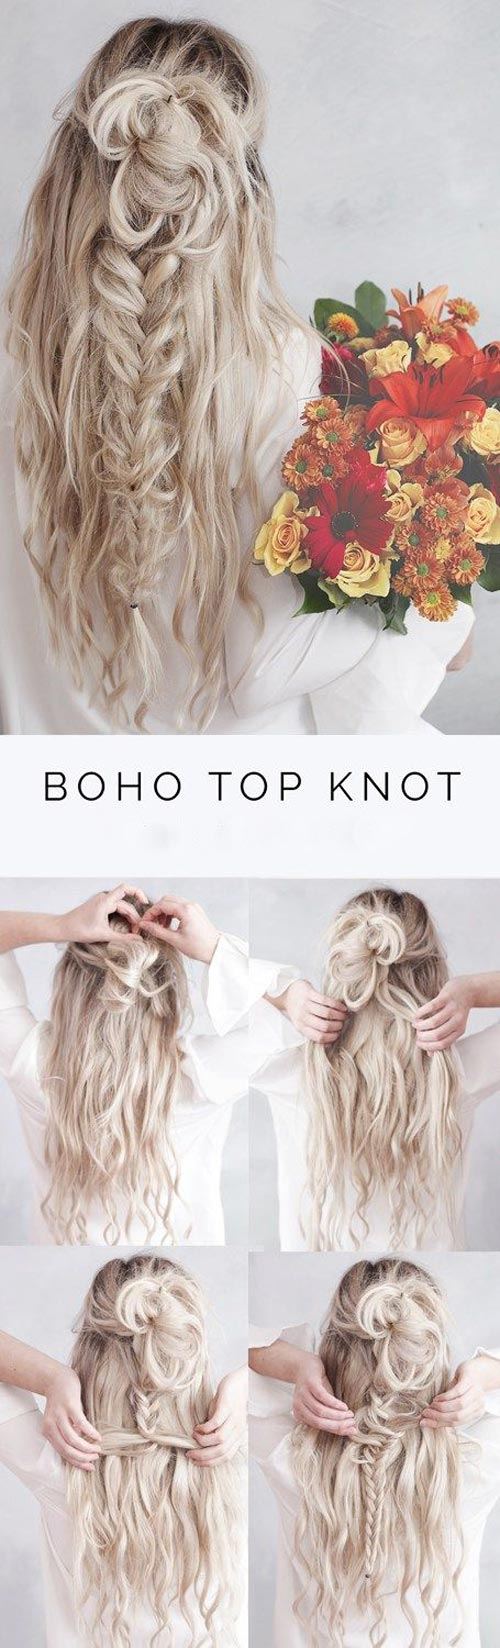 Boho top knot with fish braid